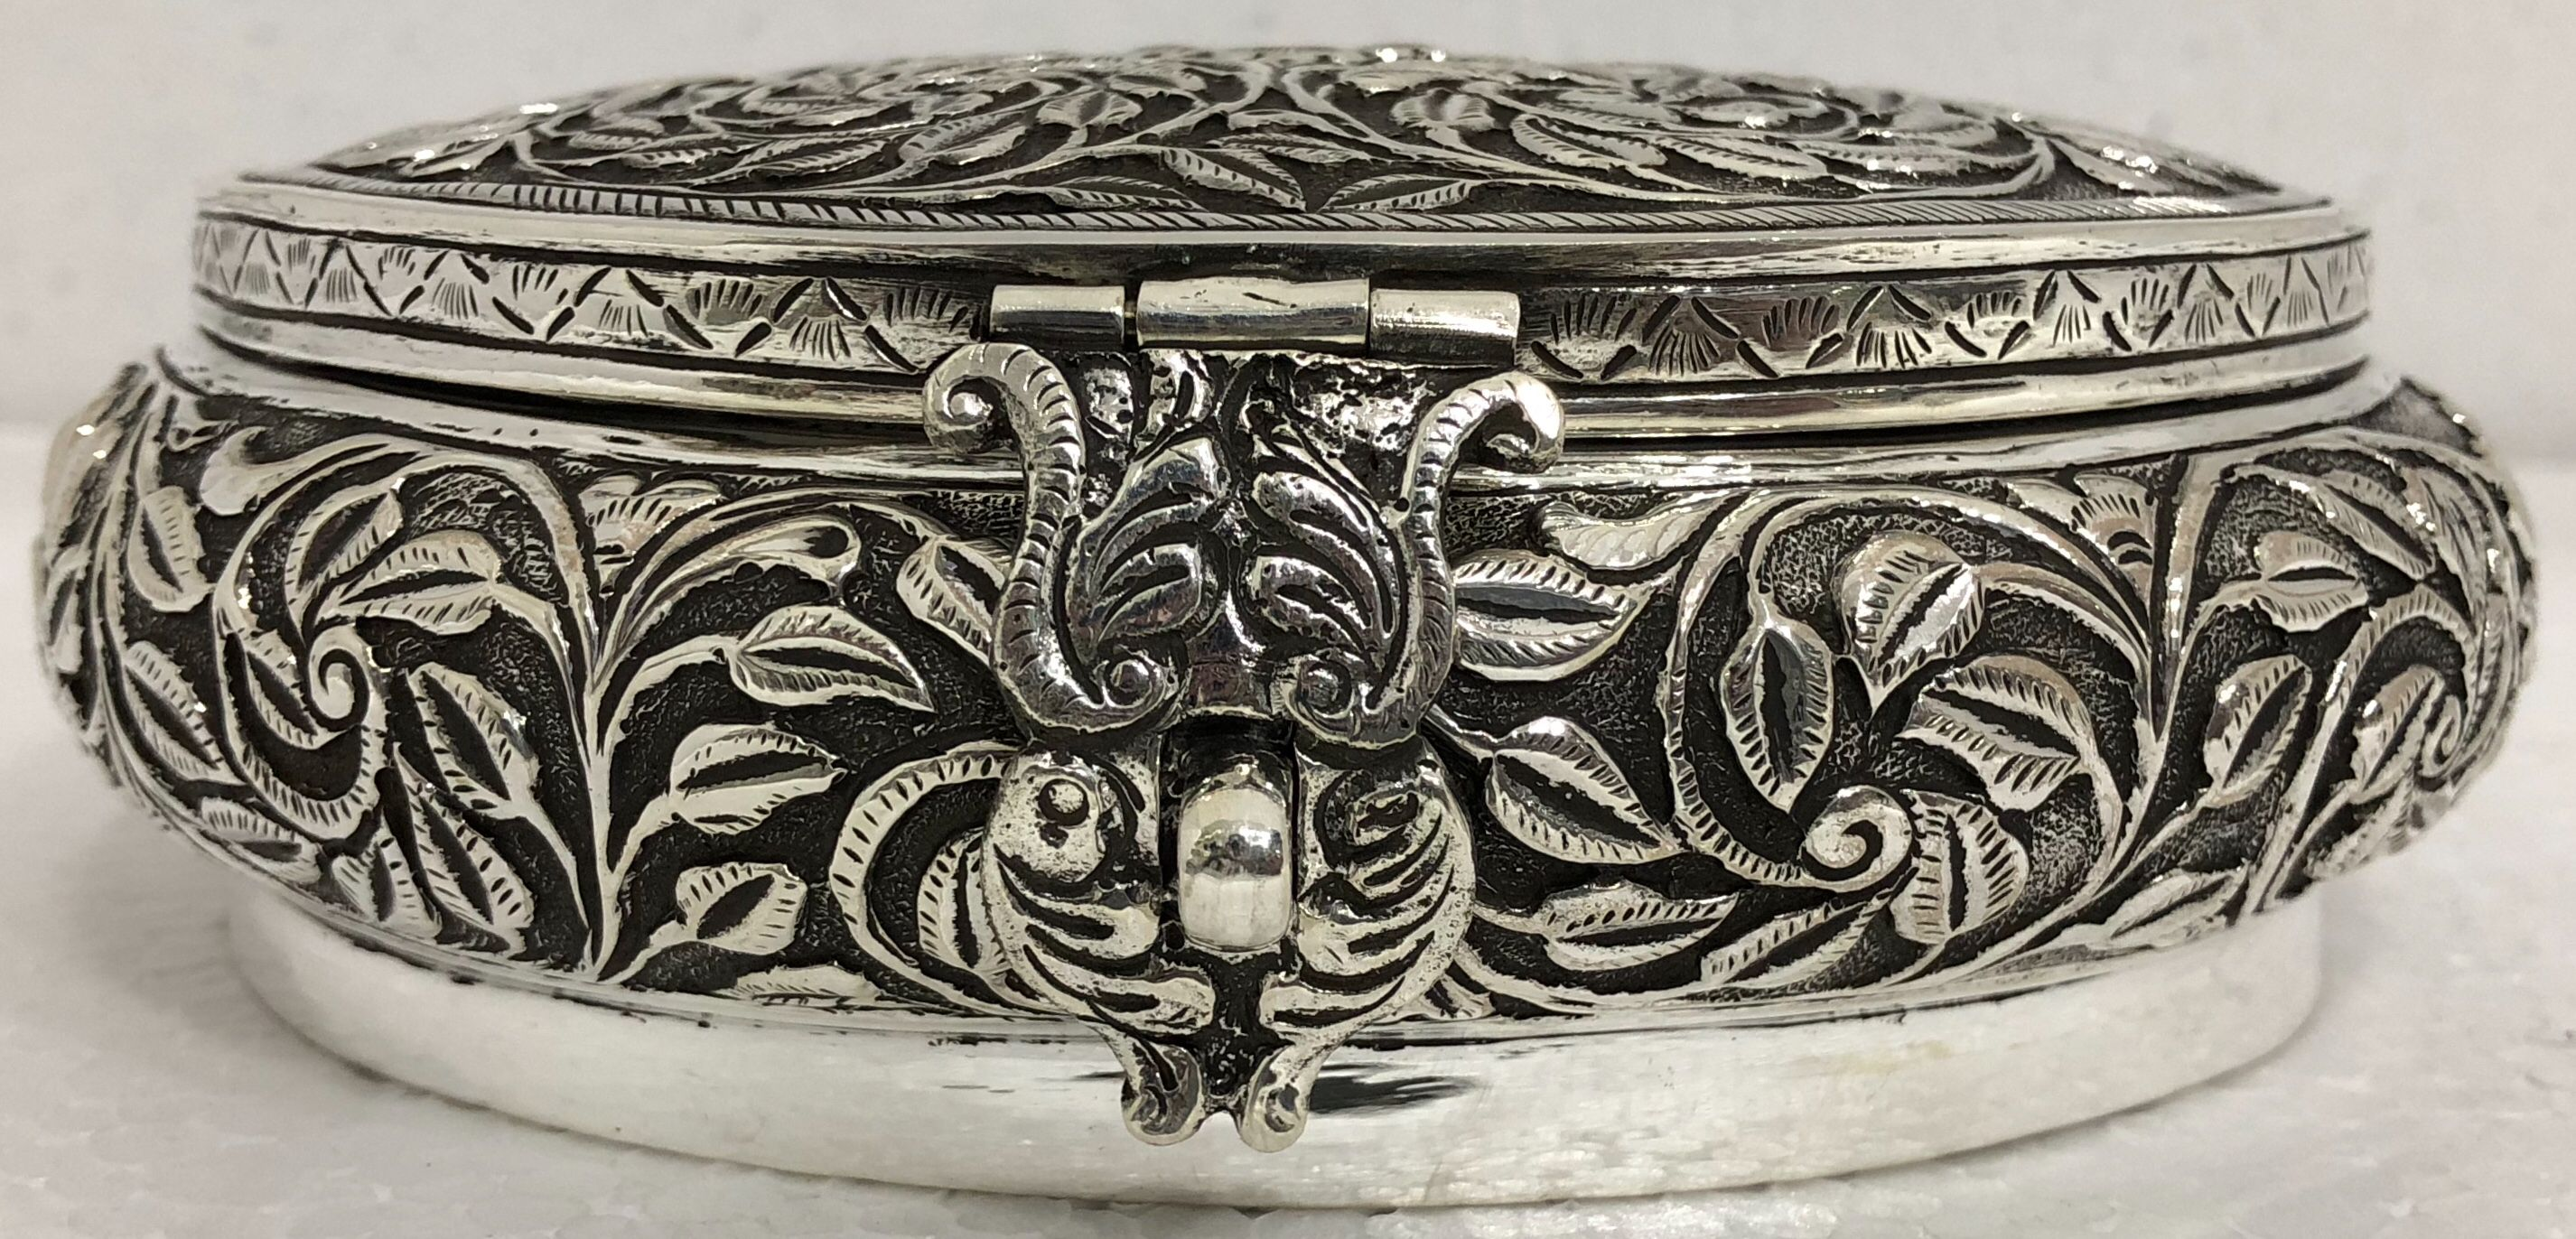 .925 Sterling Silver Hand Chased Round Cylindrical Box Container Repousse Gift